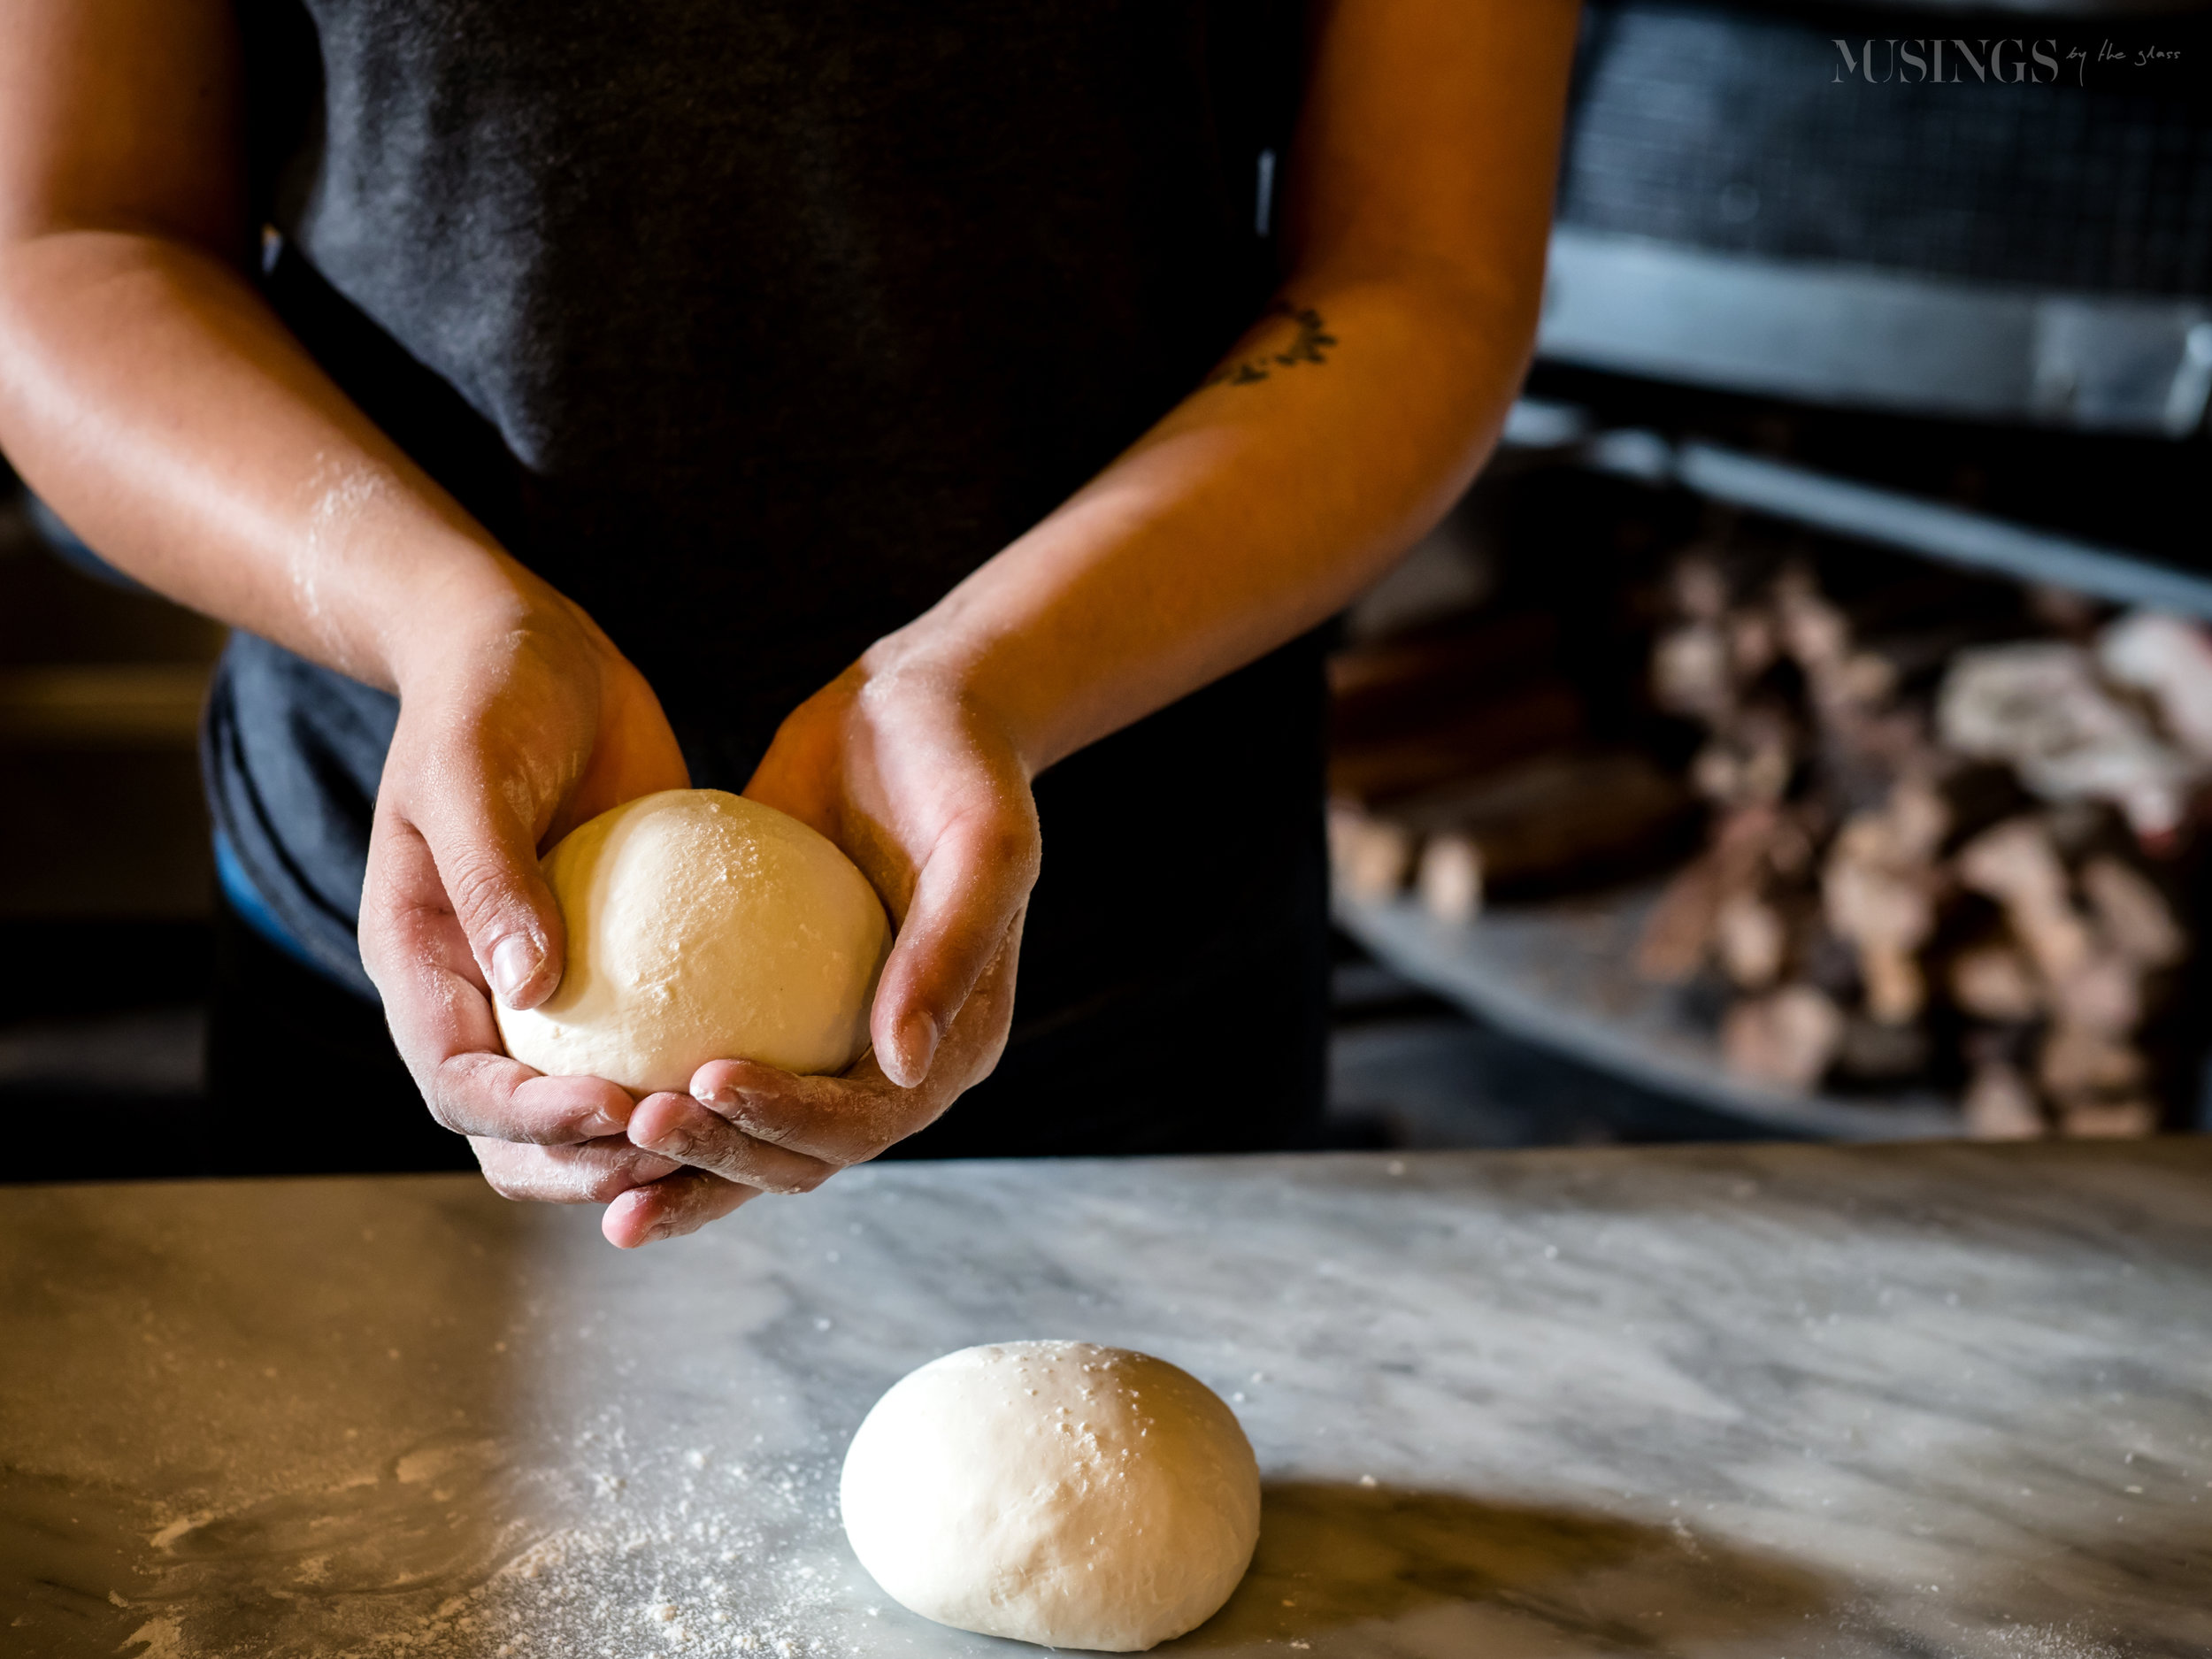 Favored Photos Reflective - Snap a Photo Make a Friend - Female Employee rolls pizza dough at Brick Fire Tavern in Chinatown Honolulu Hawaii